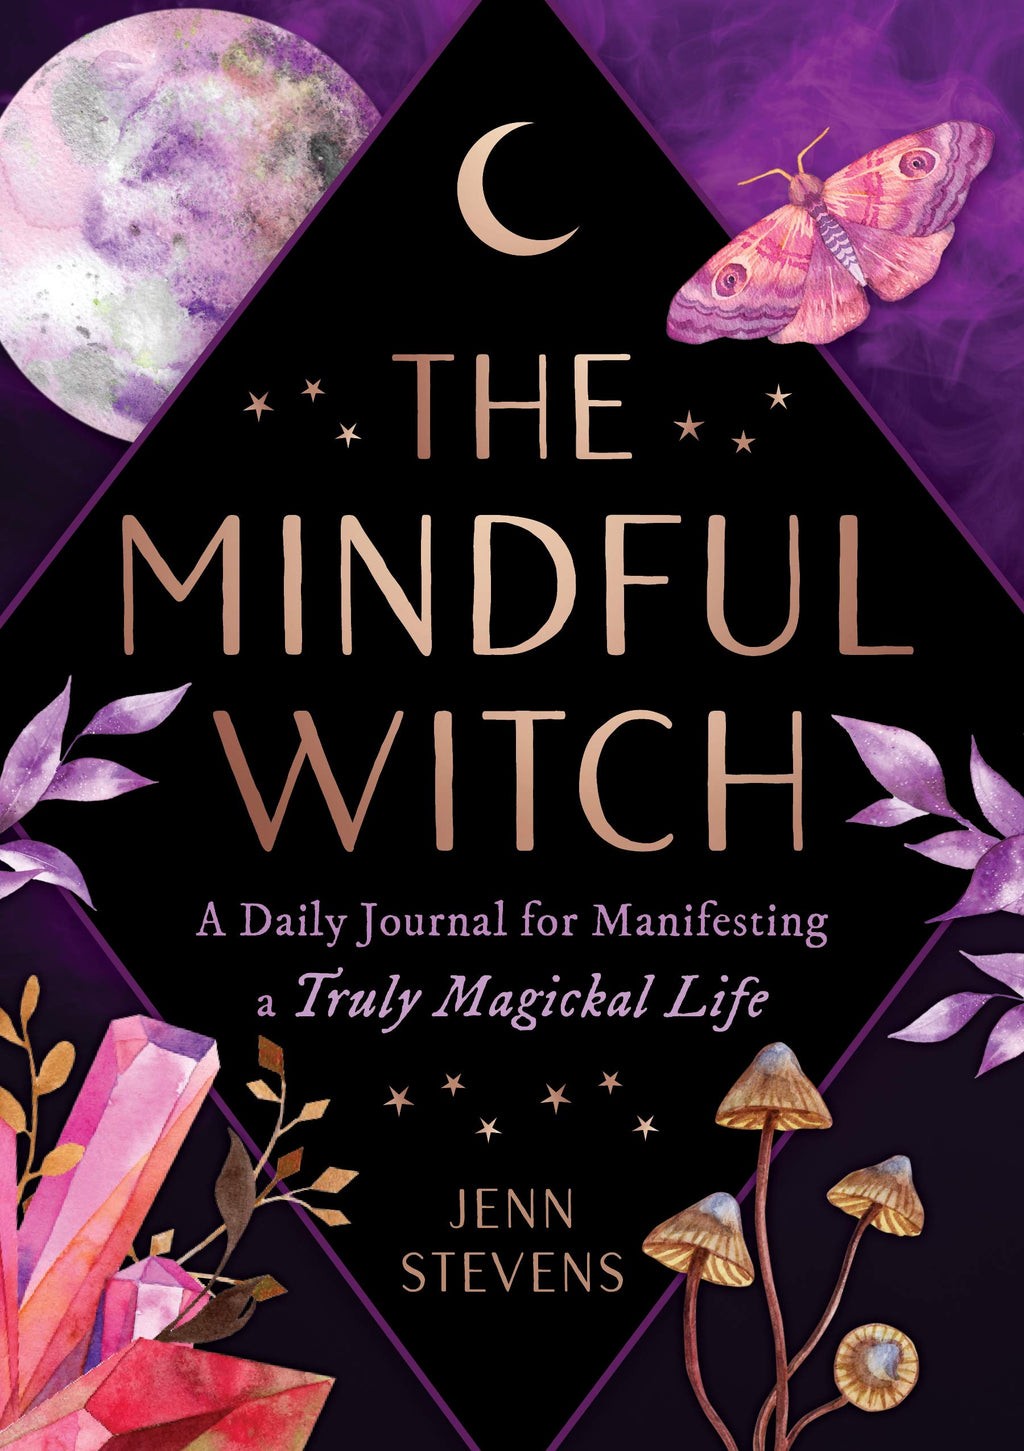 Mindful Witch Journal by Jenn Stevens